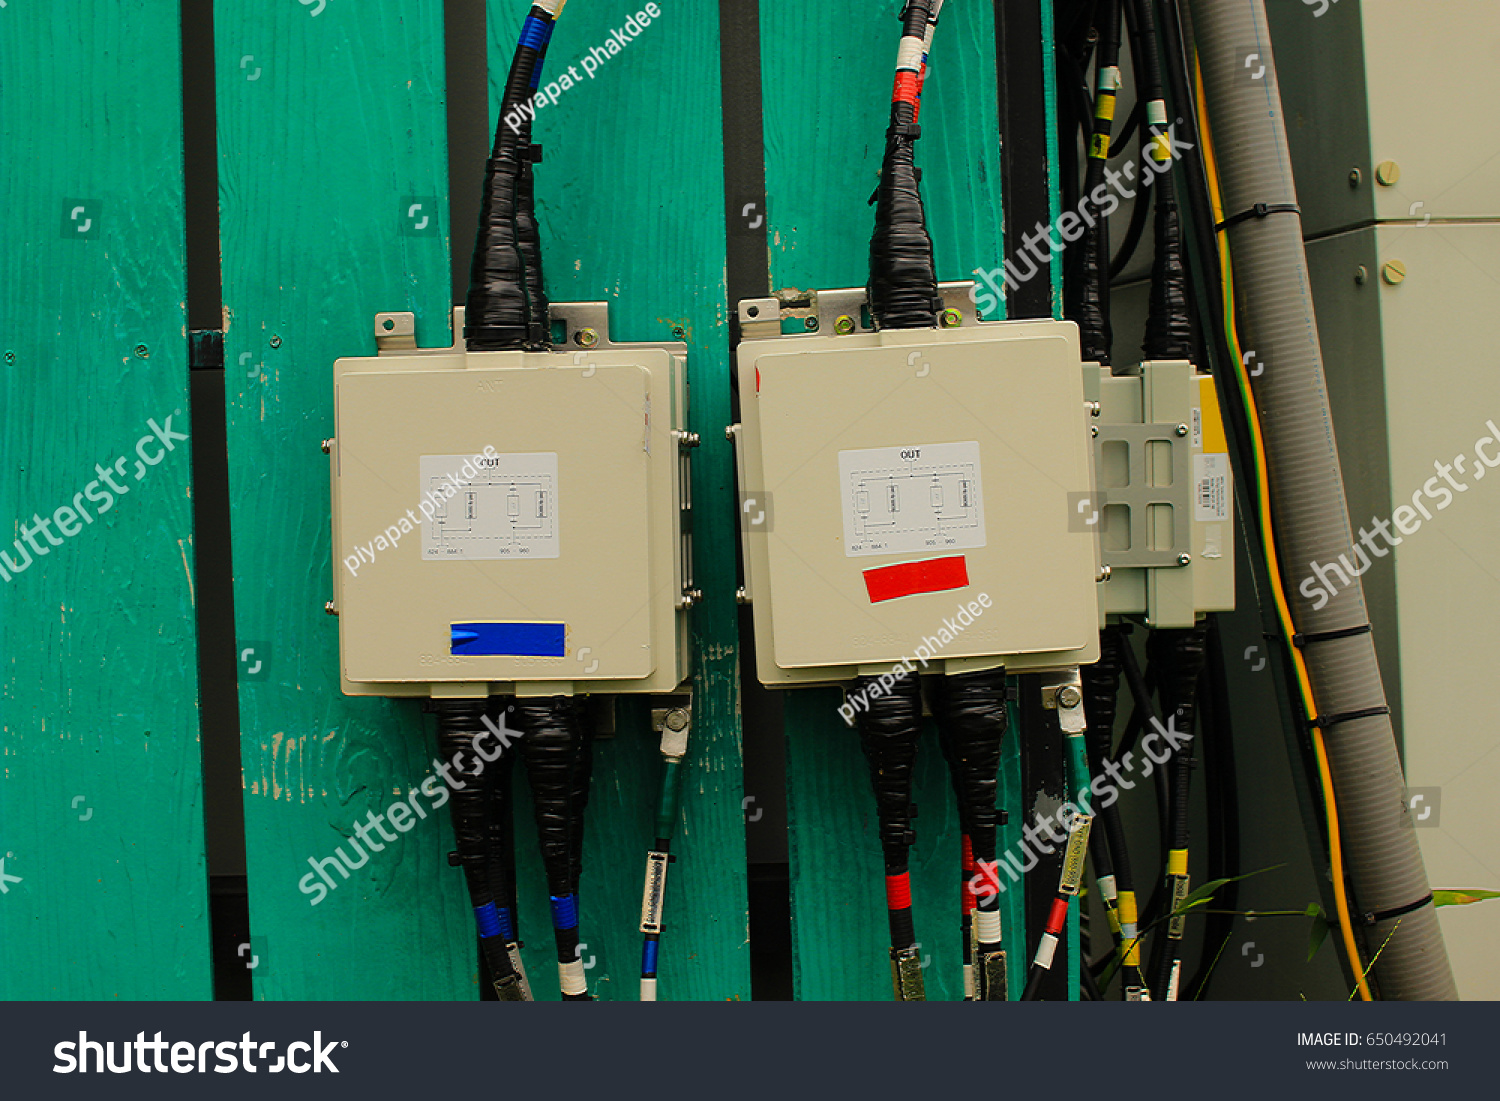 fuse box of safety